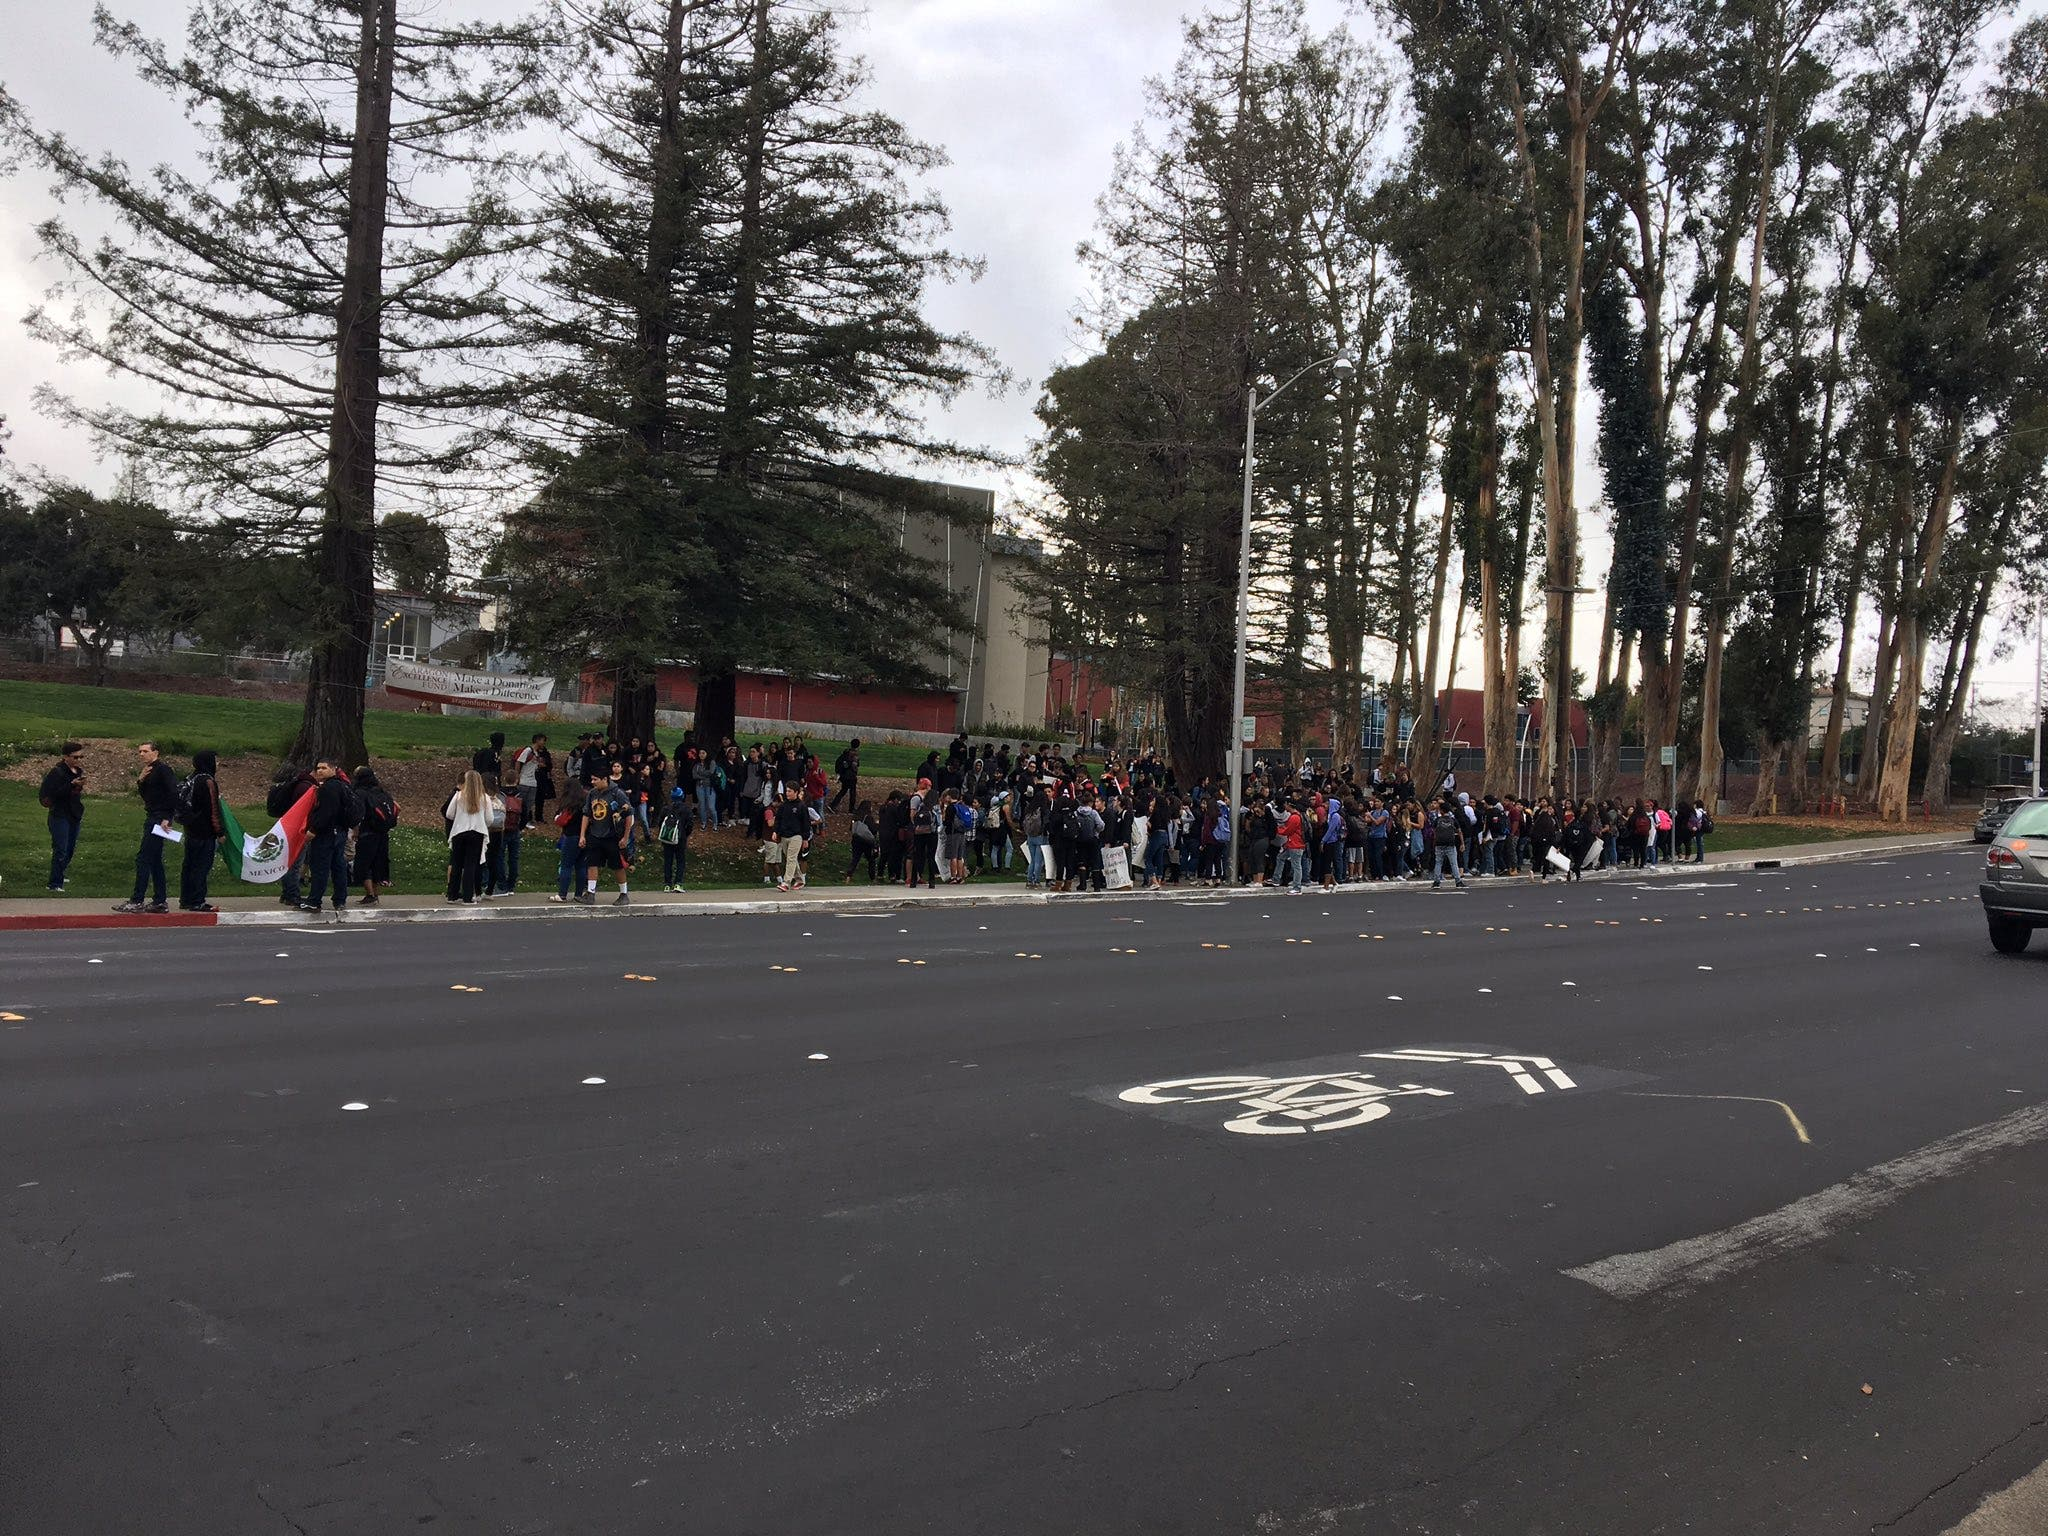 900 San Mateo Co  Students Take Part in Walkout